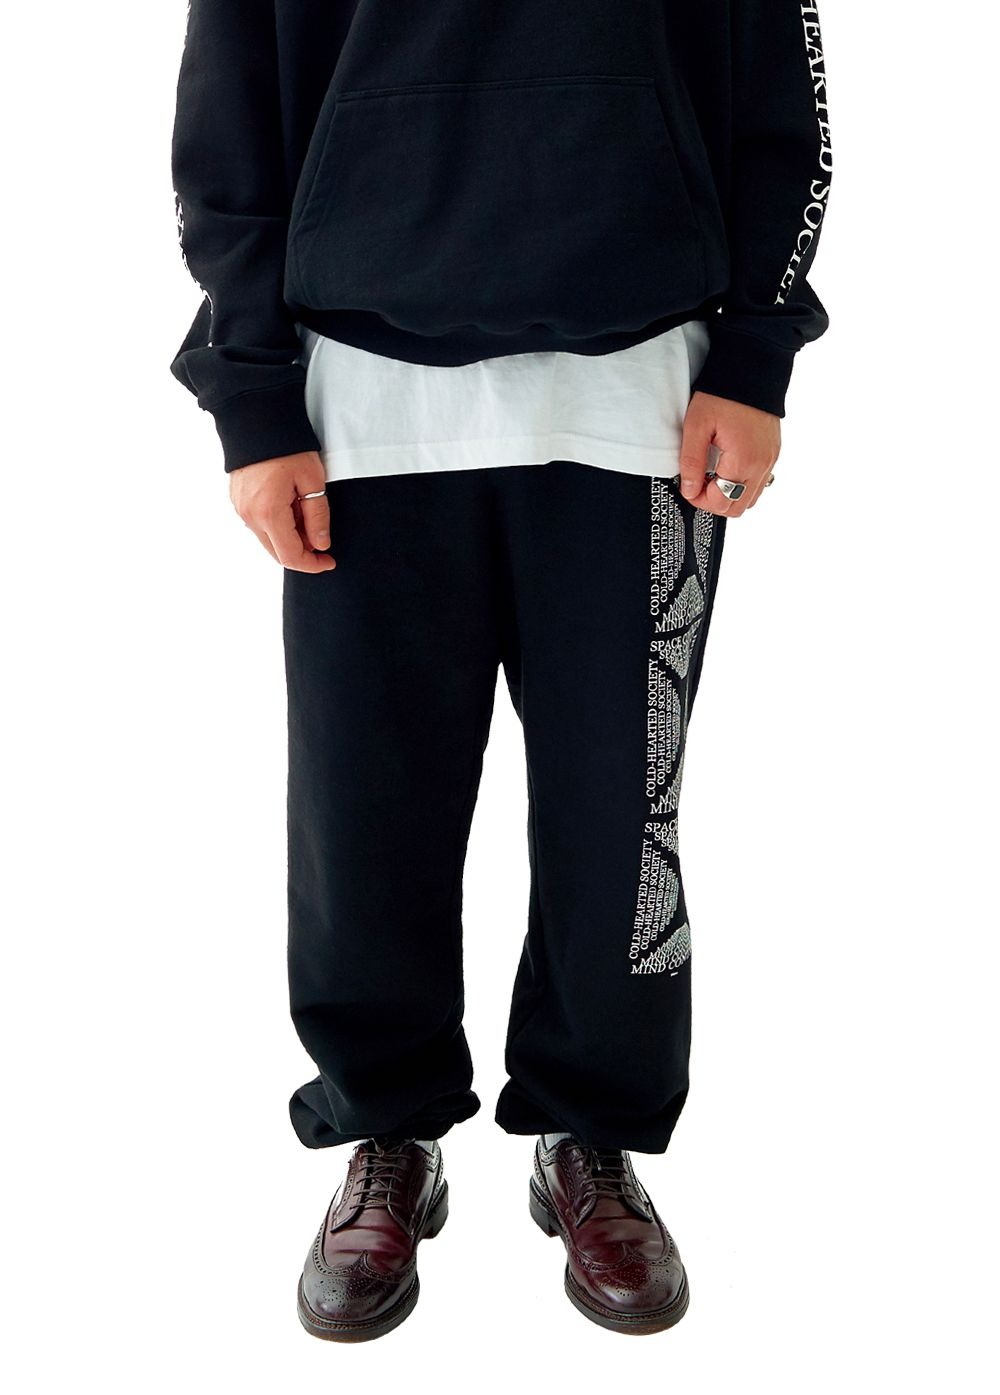 FUZZ MINDCONTROL SWEATPANTS black